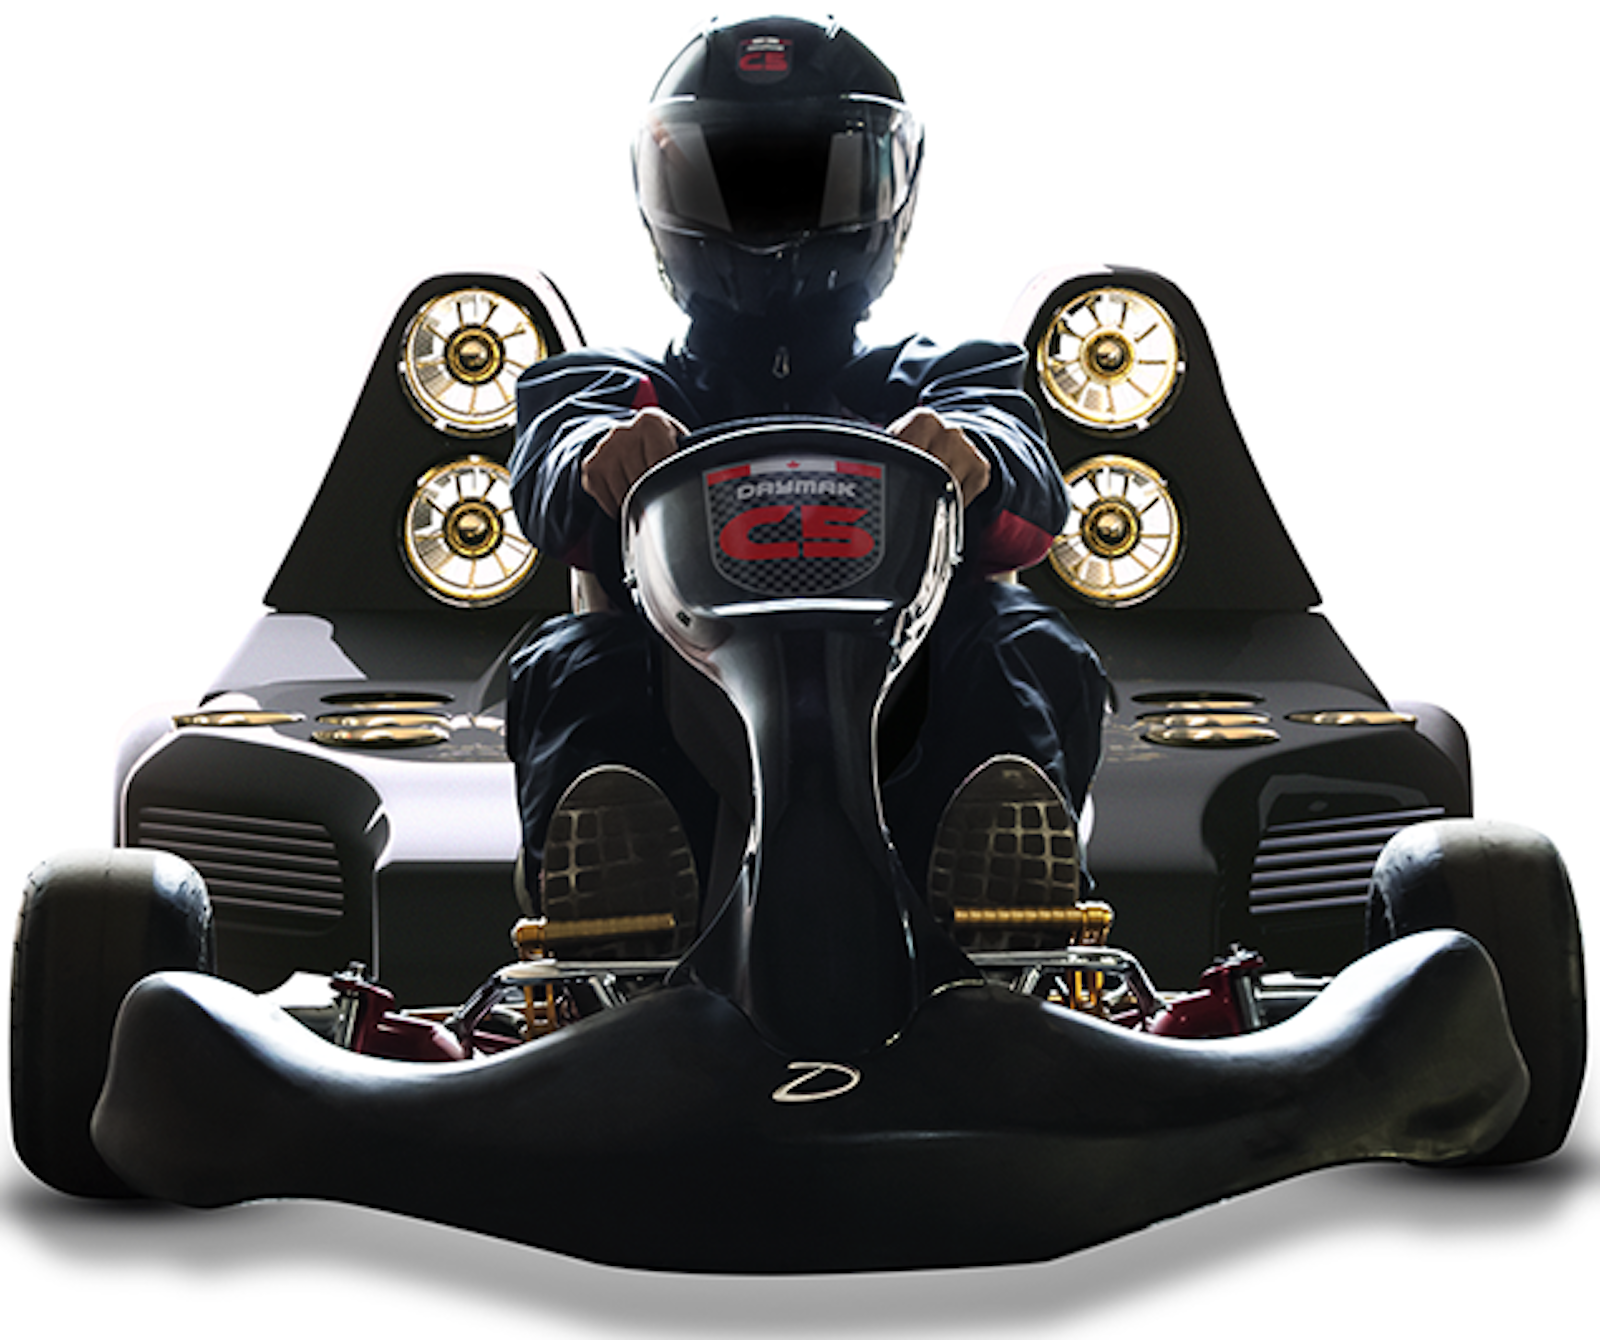 Daymak Inc Has Announced Its New Product Called C5 Blast Go Kart What The Team Believe Will Be Fastest Electric In World